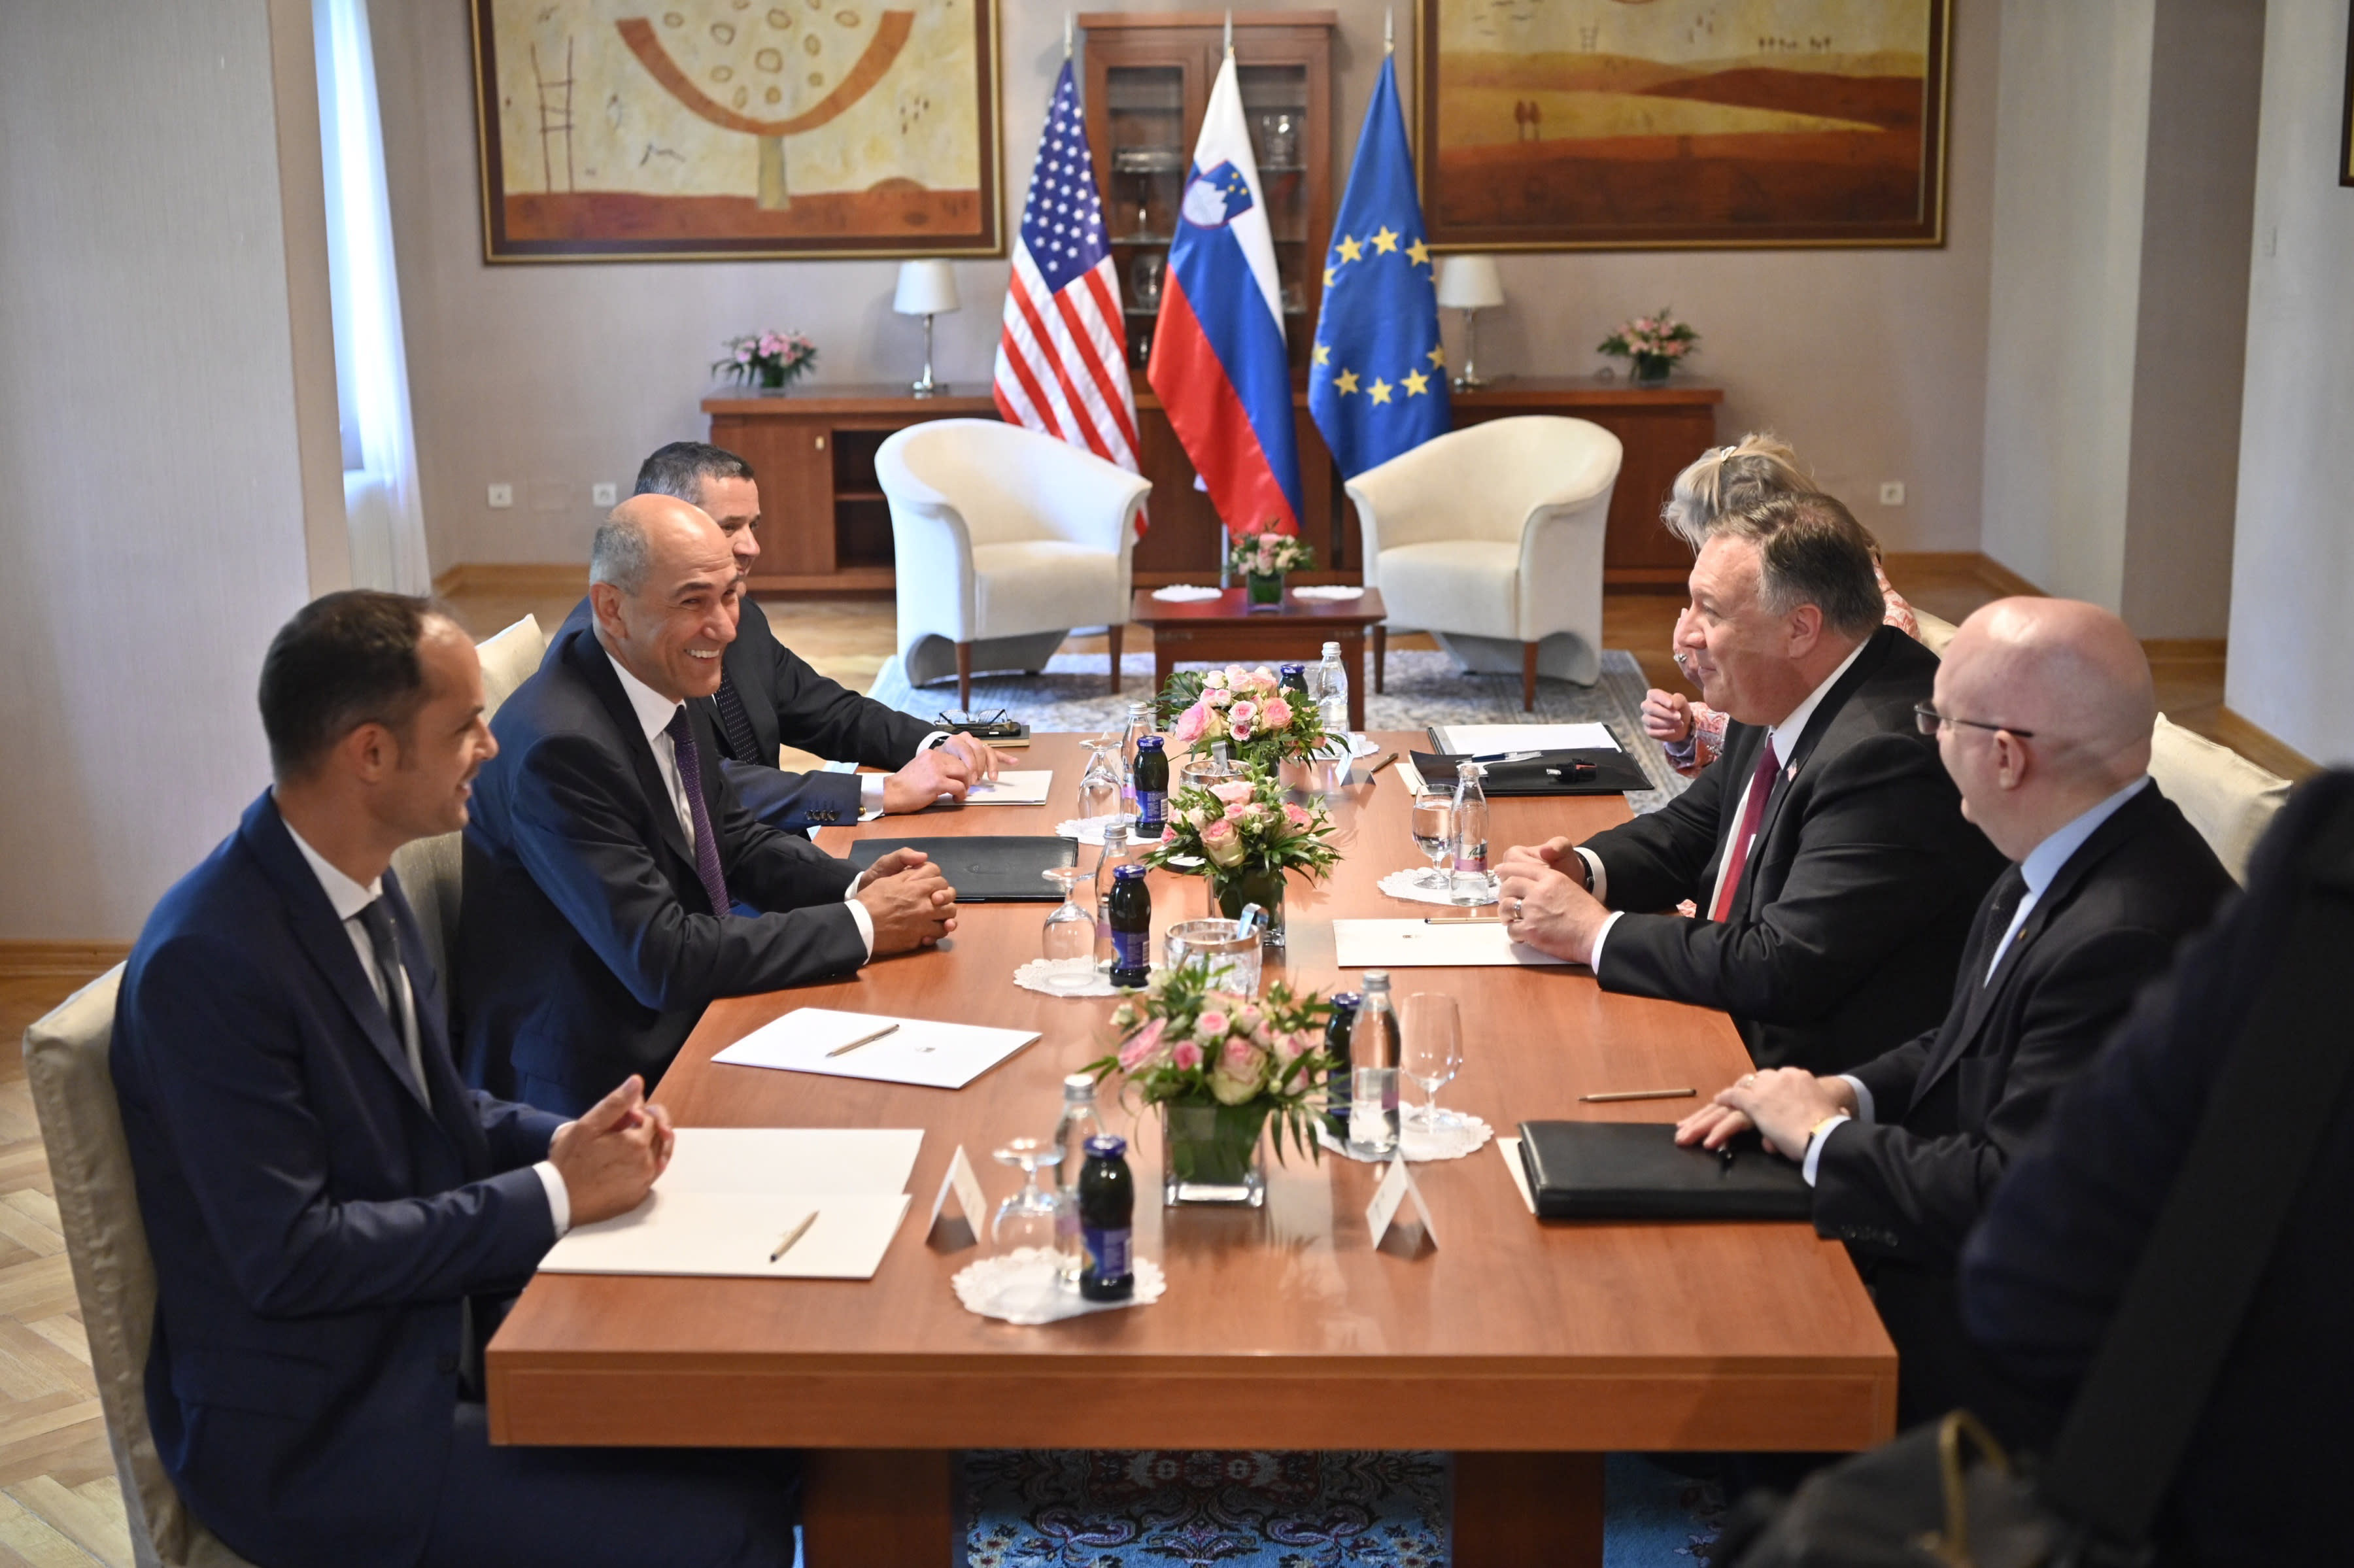 Slovenian Prime Minister Janez Jansa, second left and US Secretary of State Mike Pompeo , second right take part in a meeting in Bled, Slovenia, Thursday, Aug. 13, 2020. Pompeo is on a five-day visit to central Europe with a hefty agenda including China's role in 5G network construction. (Jure Makovec/Pool Photo via AP)